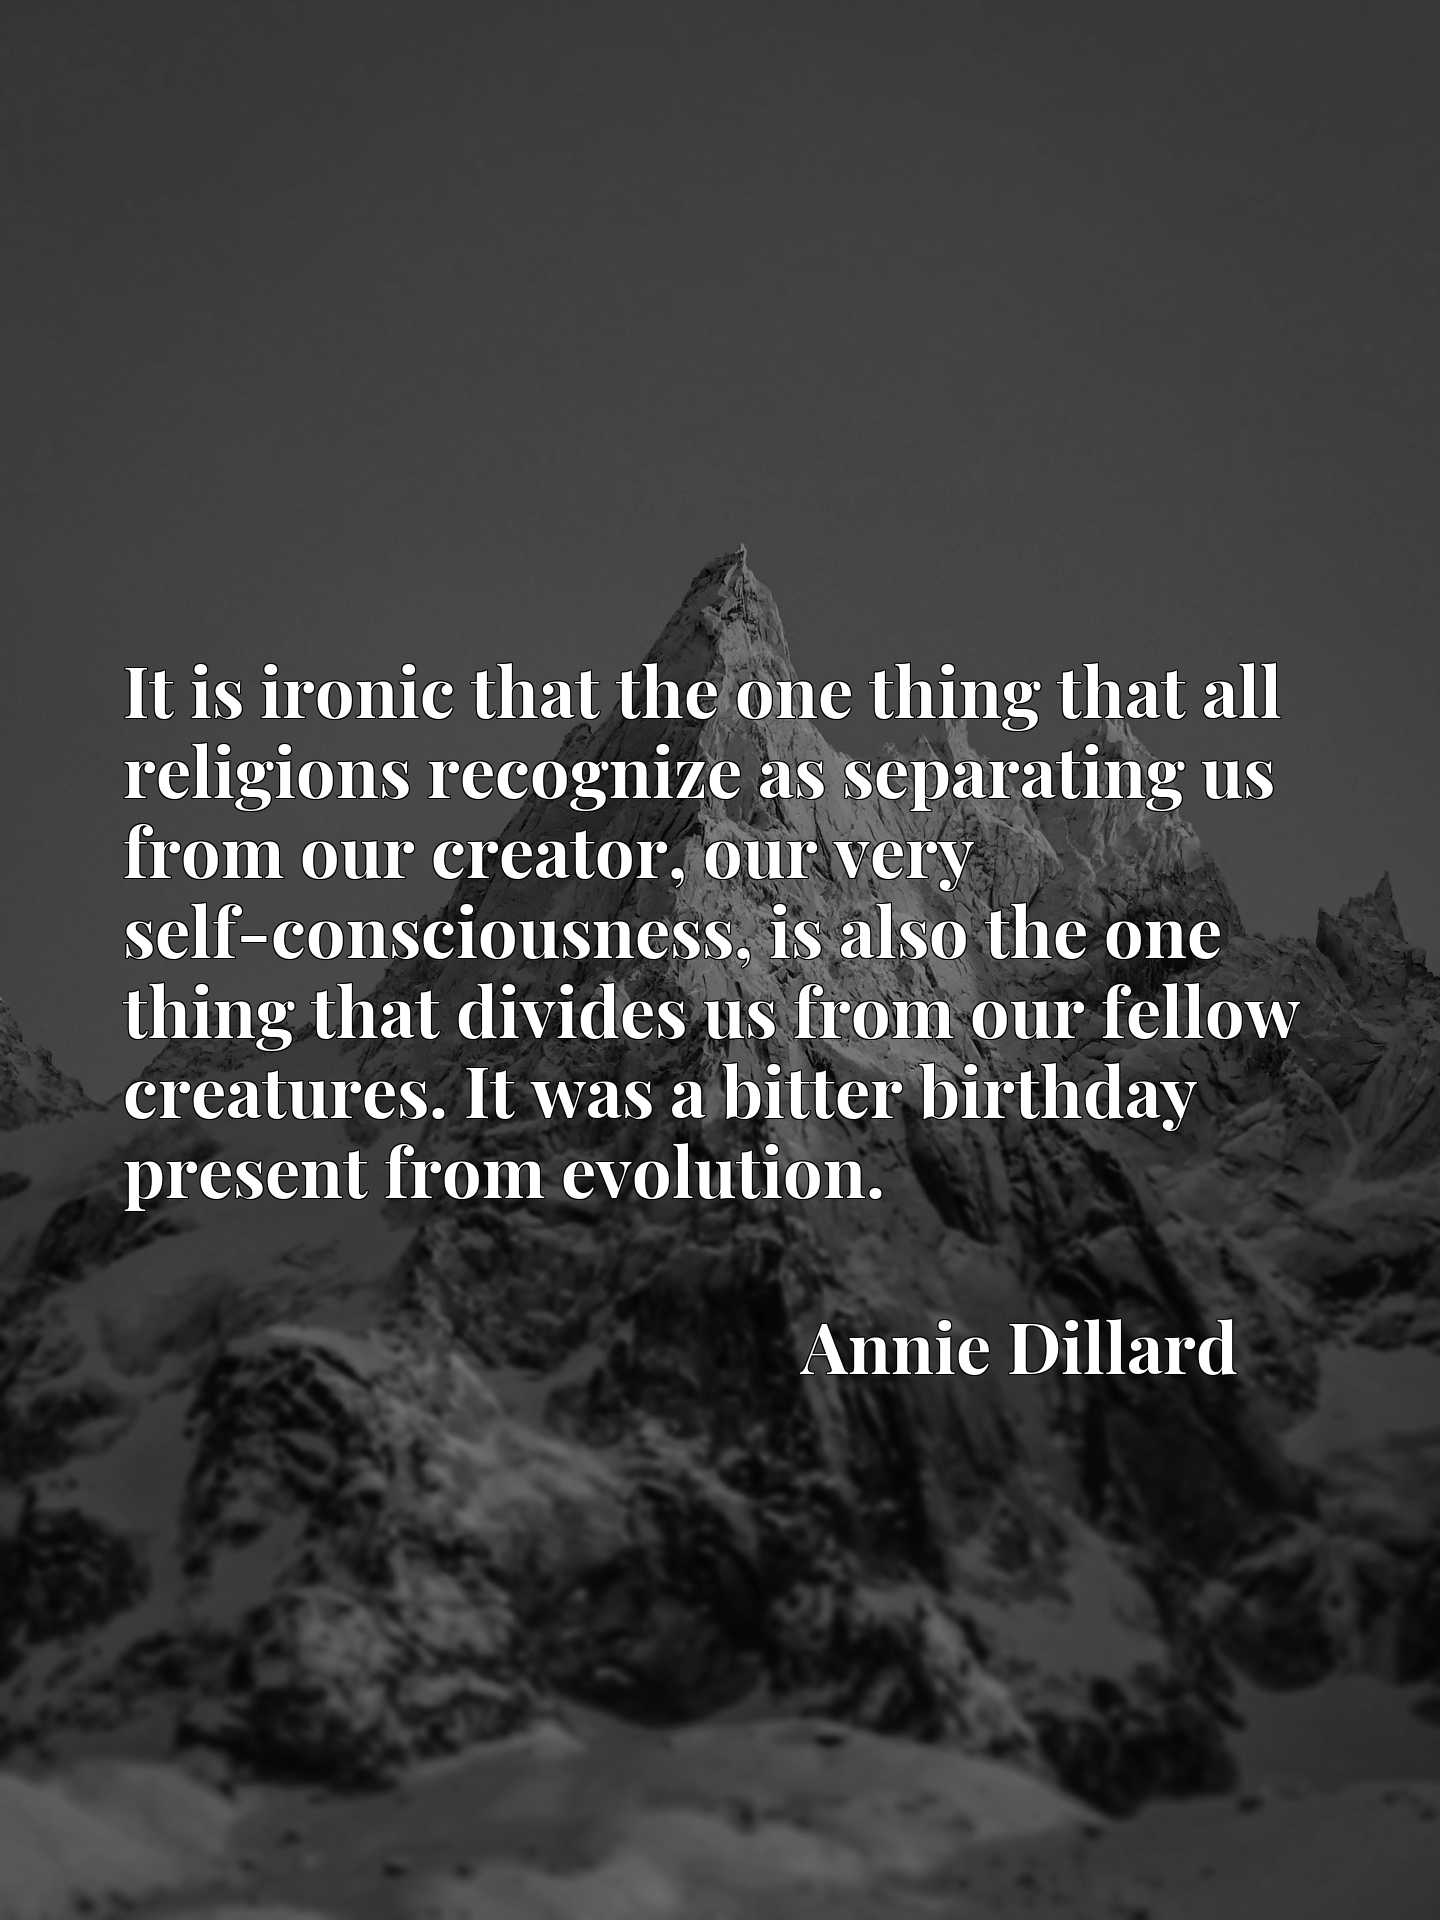 It is ironic that the one thing that all religions recognize as separating us from our creator, our very self-consciousness, is also the one thing that divides us from our fellow creatures. It was a bitter birthday present from evolution.